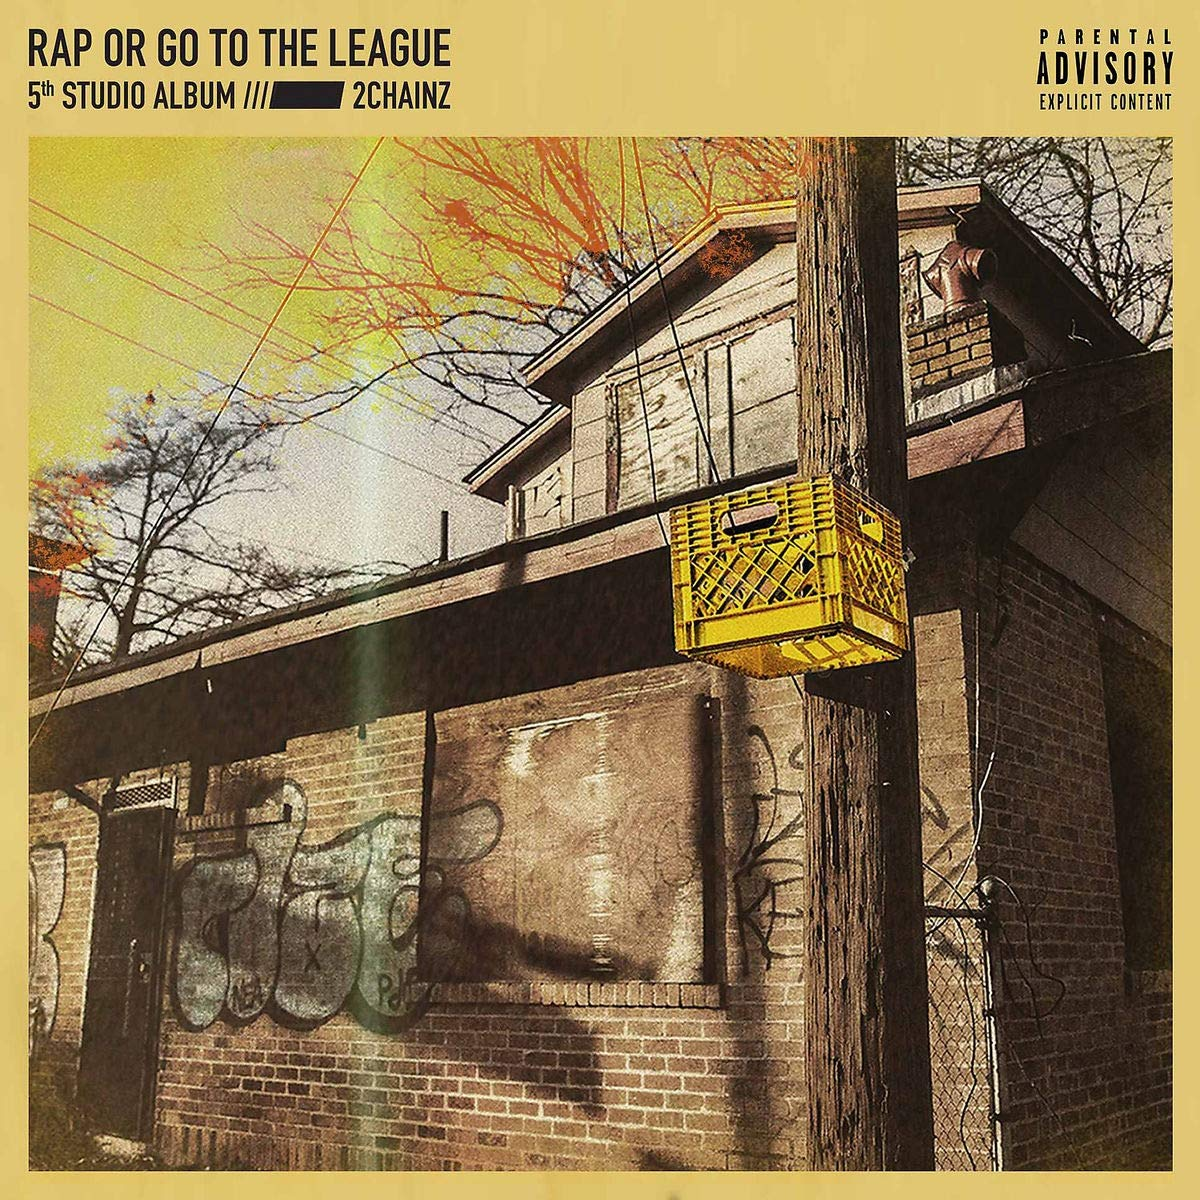 CD Shop - 2 CHAINZ RAP OR GO TO THE LEAGUE